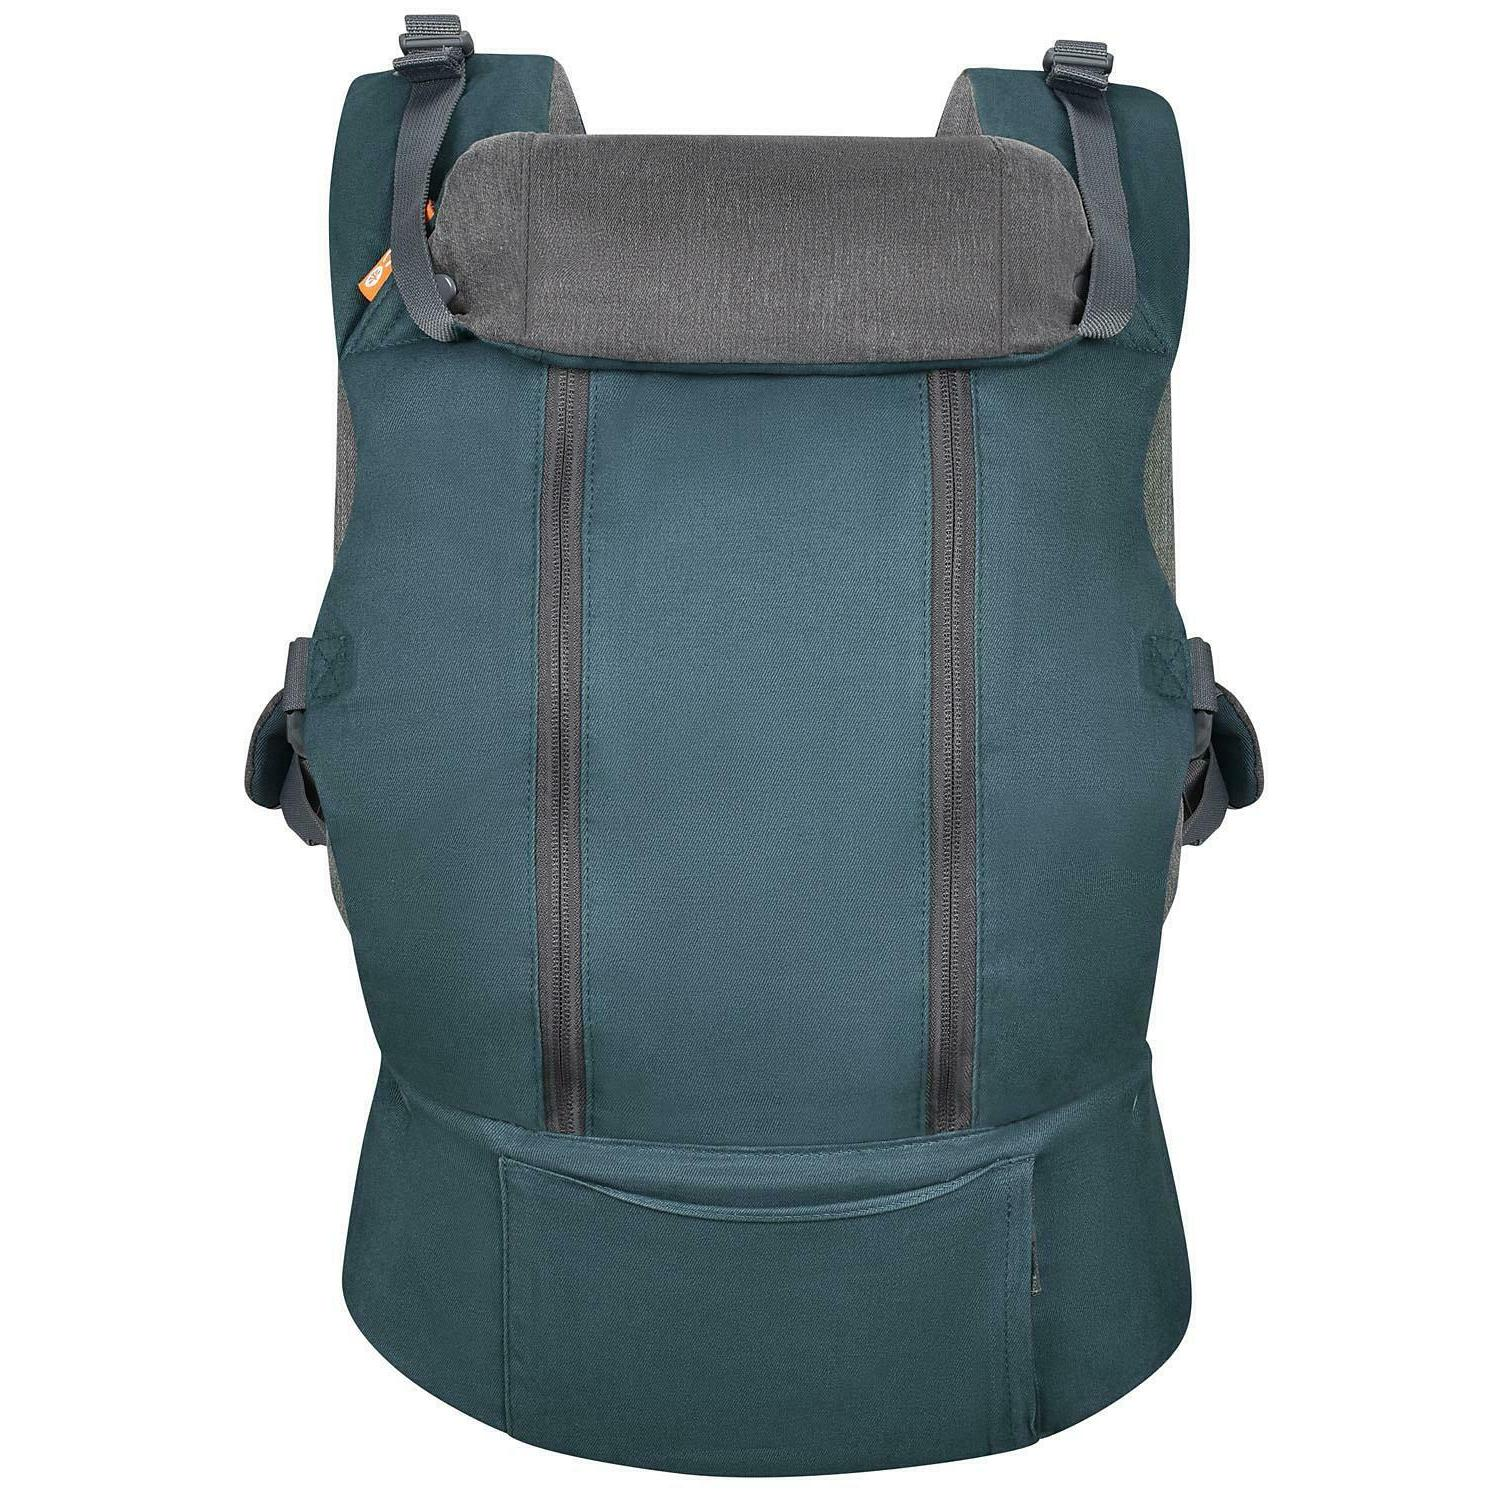 BECO 8 BABY CARRIER, TEAL *DISTRESSED PKG